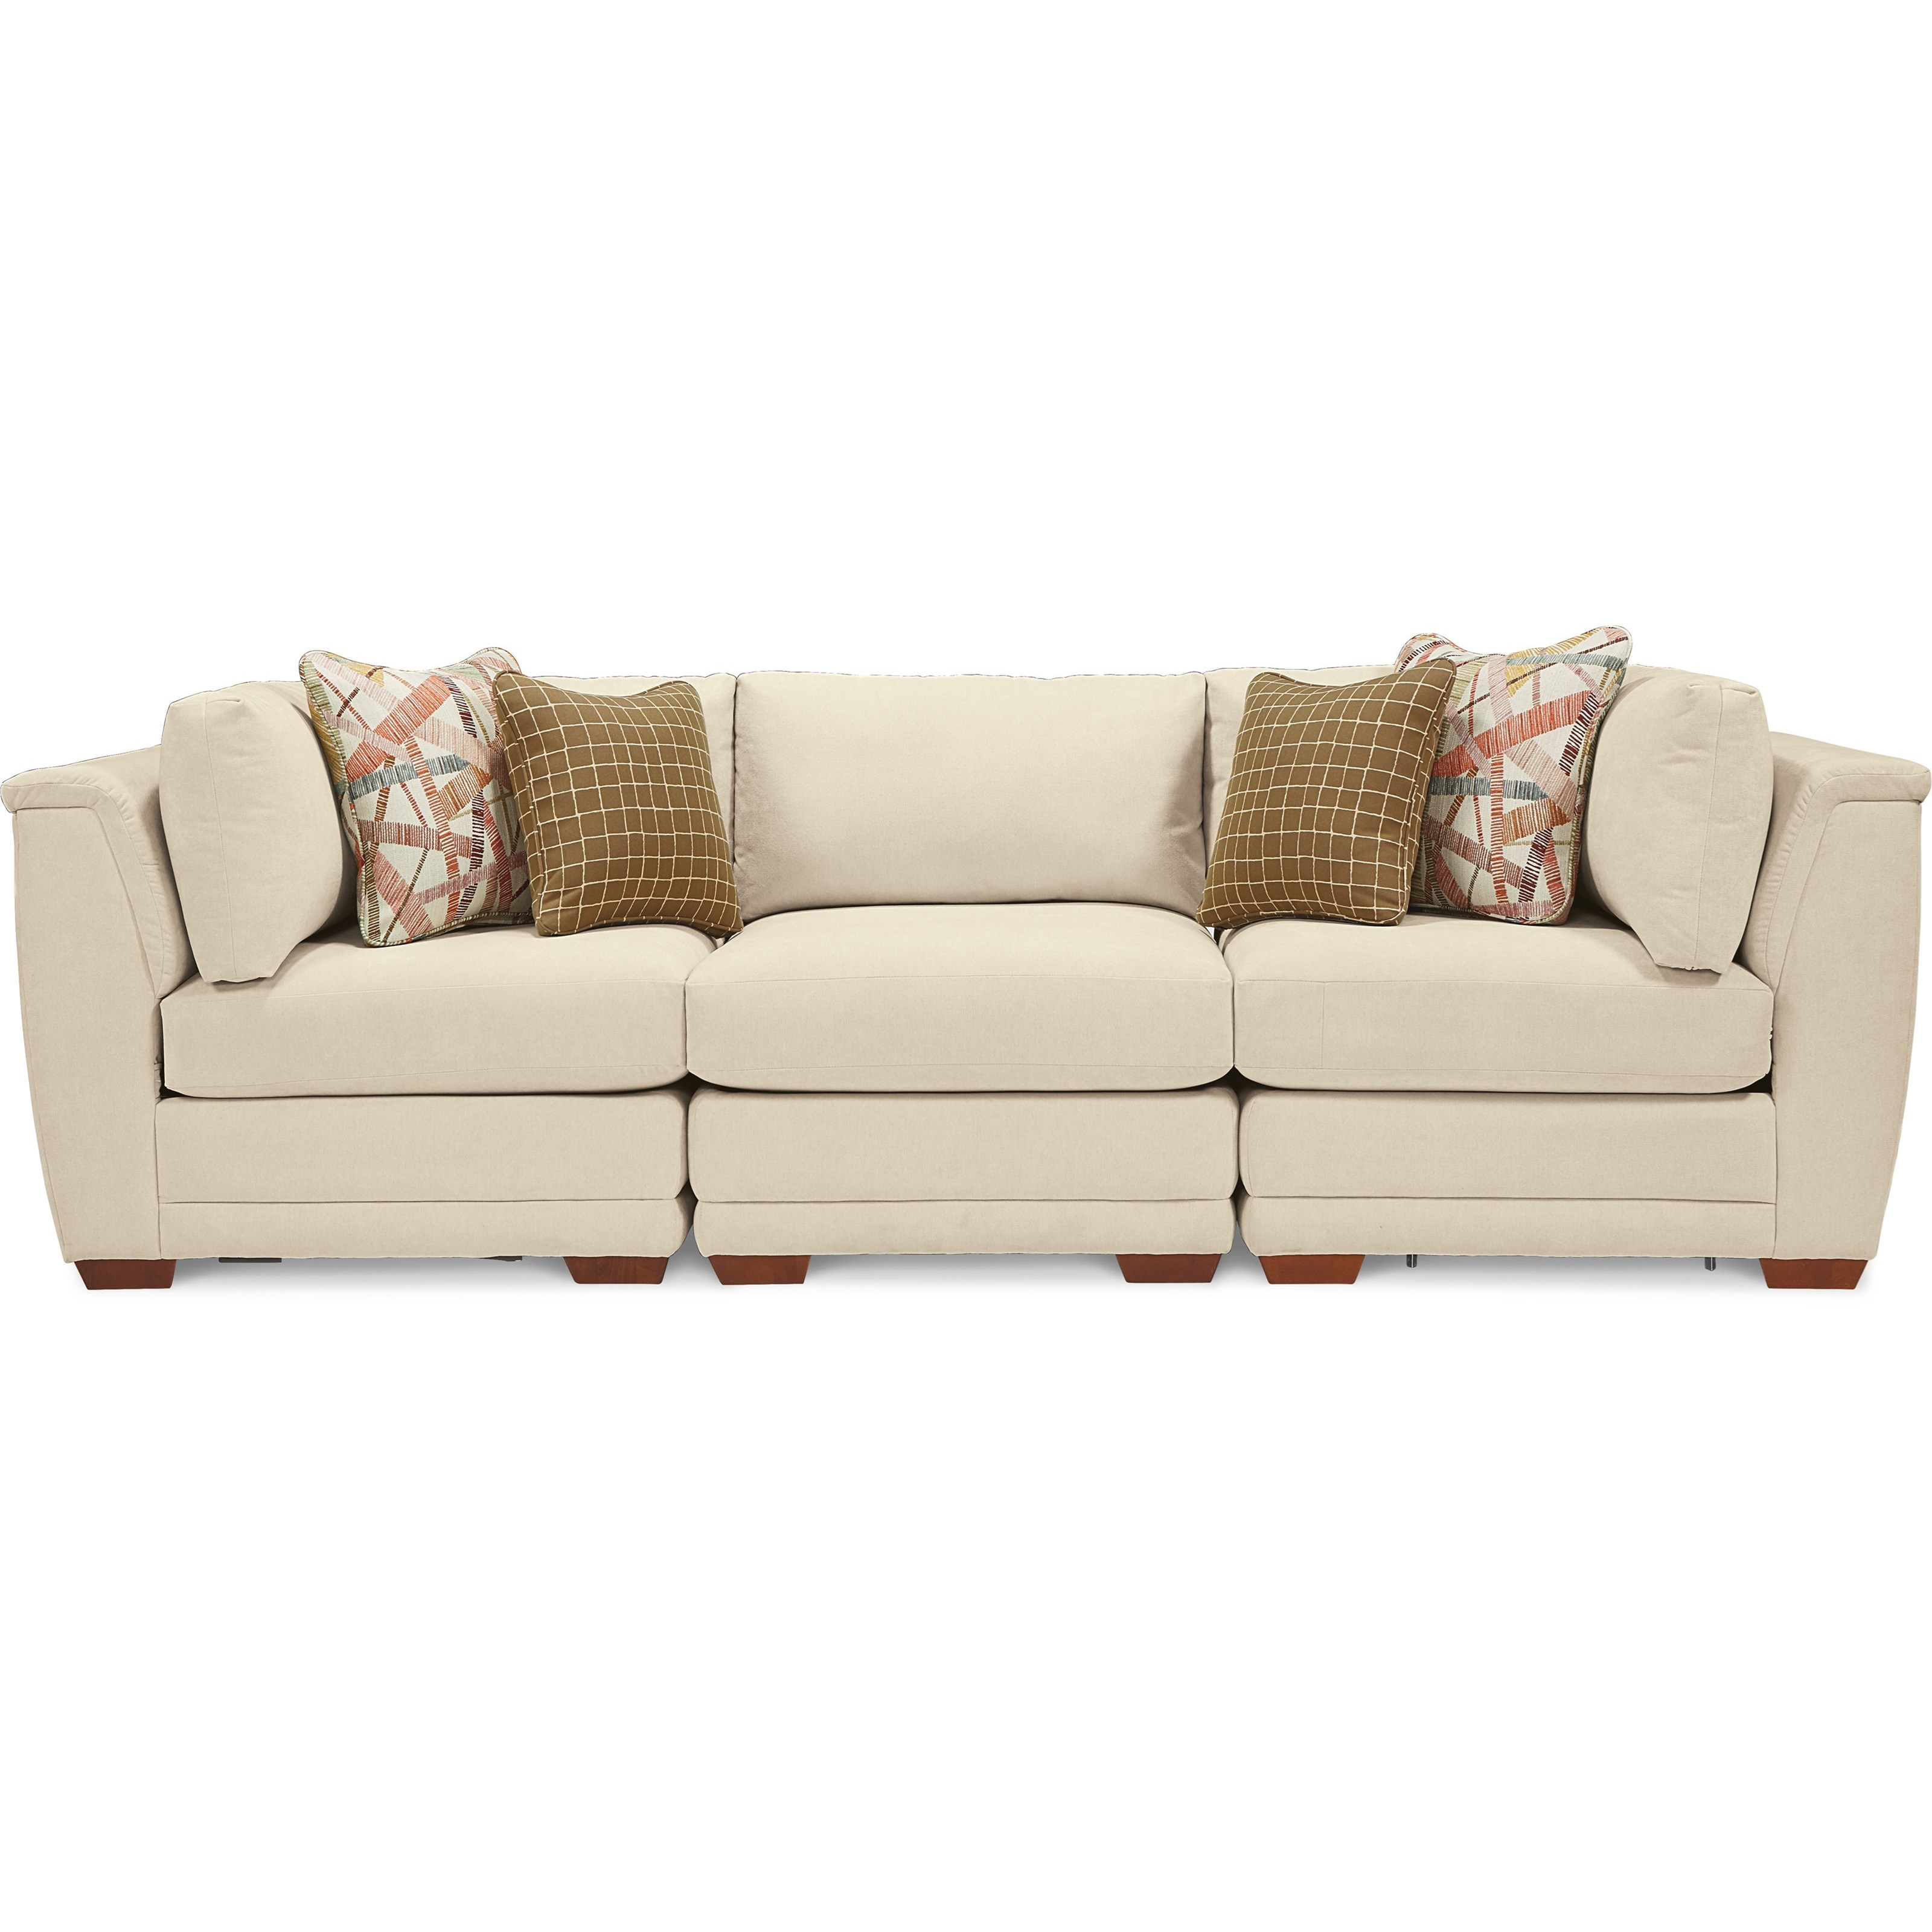 La Z Boy Ridgemont 3 Piece Sectional Sofa With Tapered